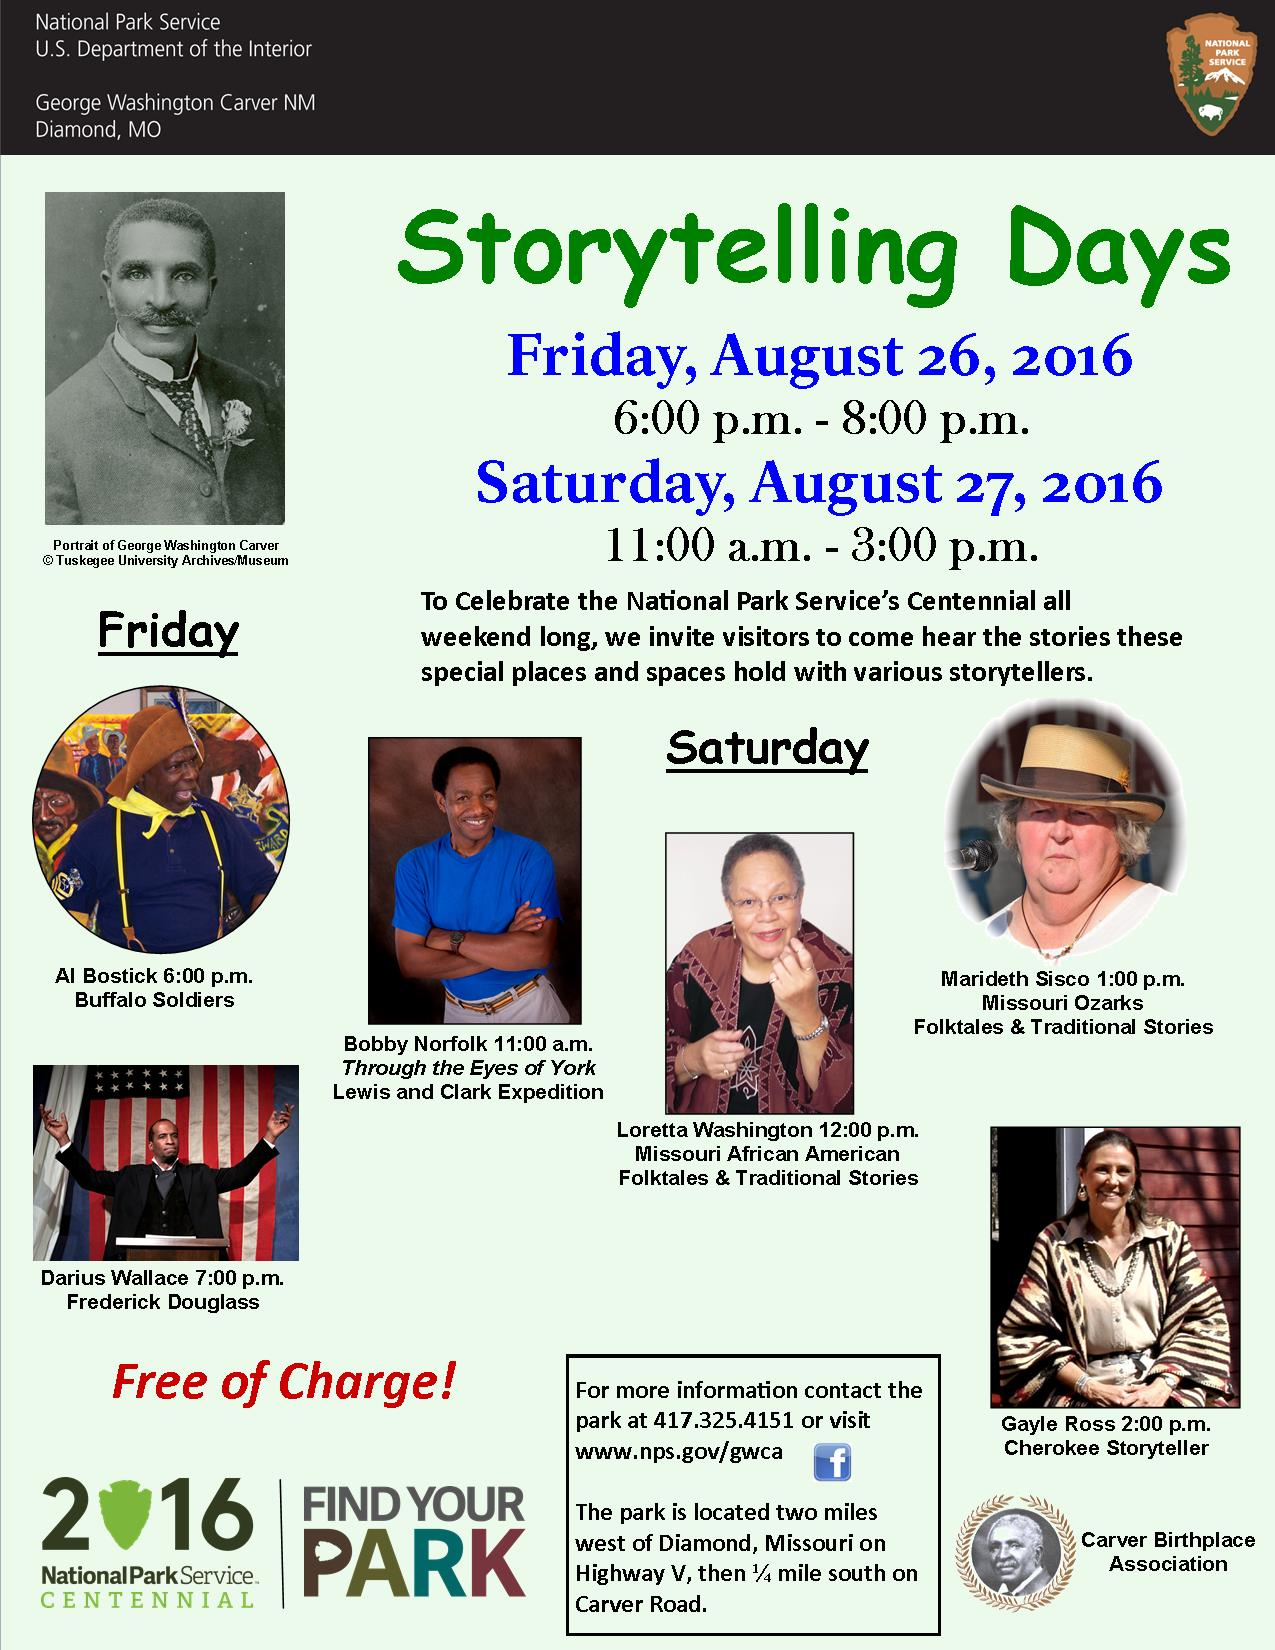 storytelling festival george washington carver national poster for the storytelling days at the park